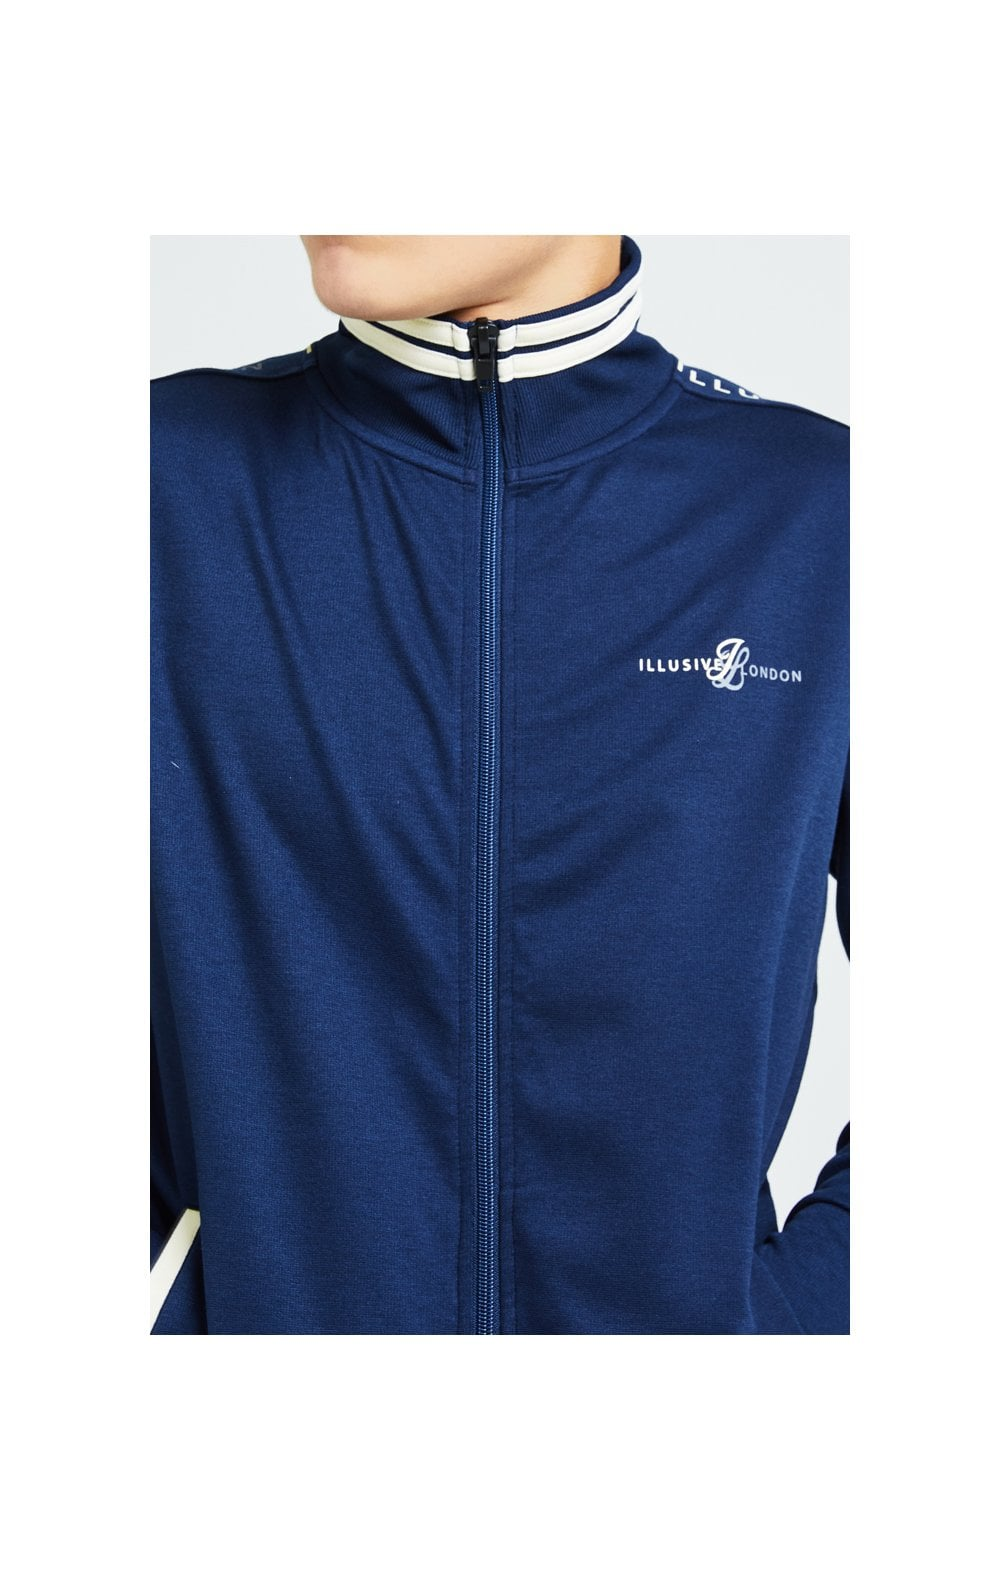 Illusive London Legacy Track Top - Navy & Cream (2)